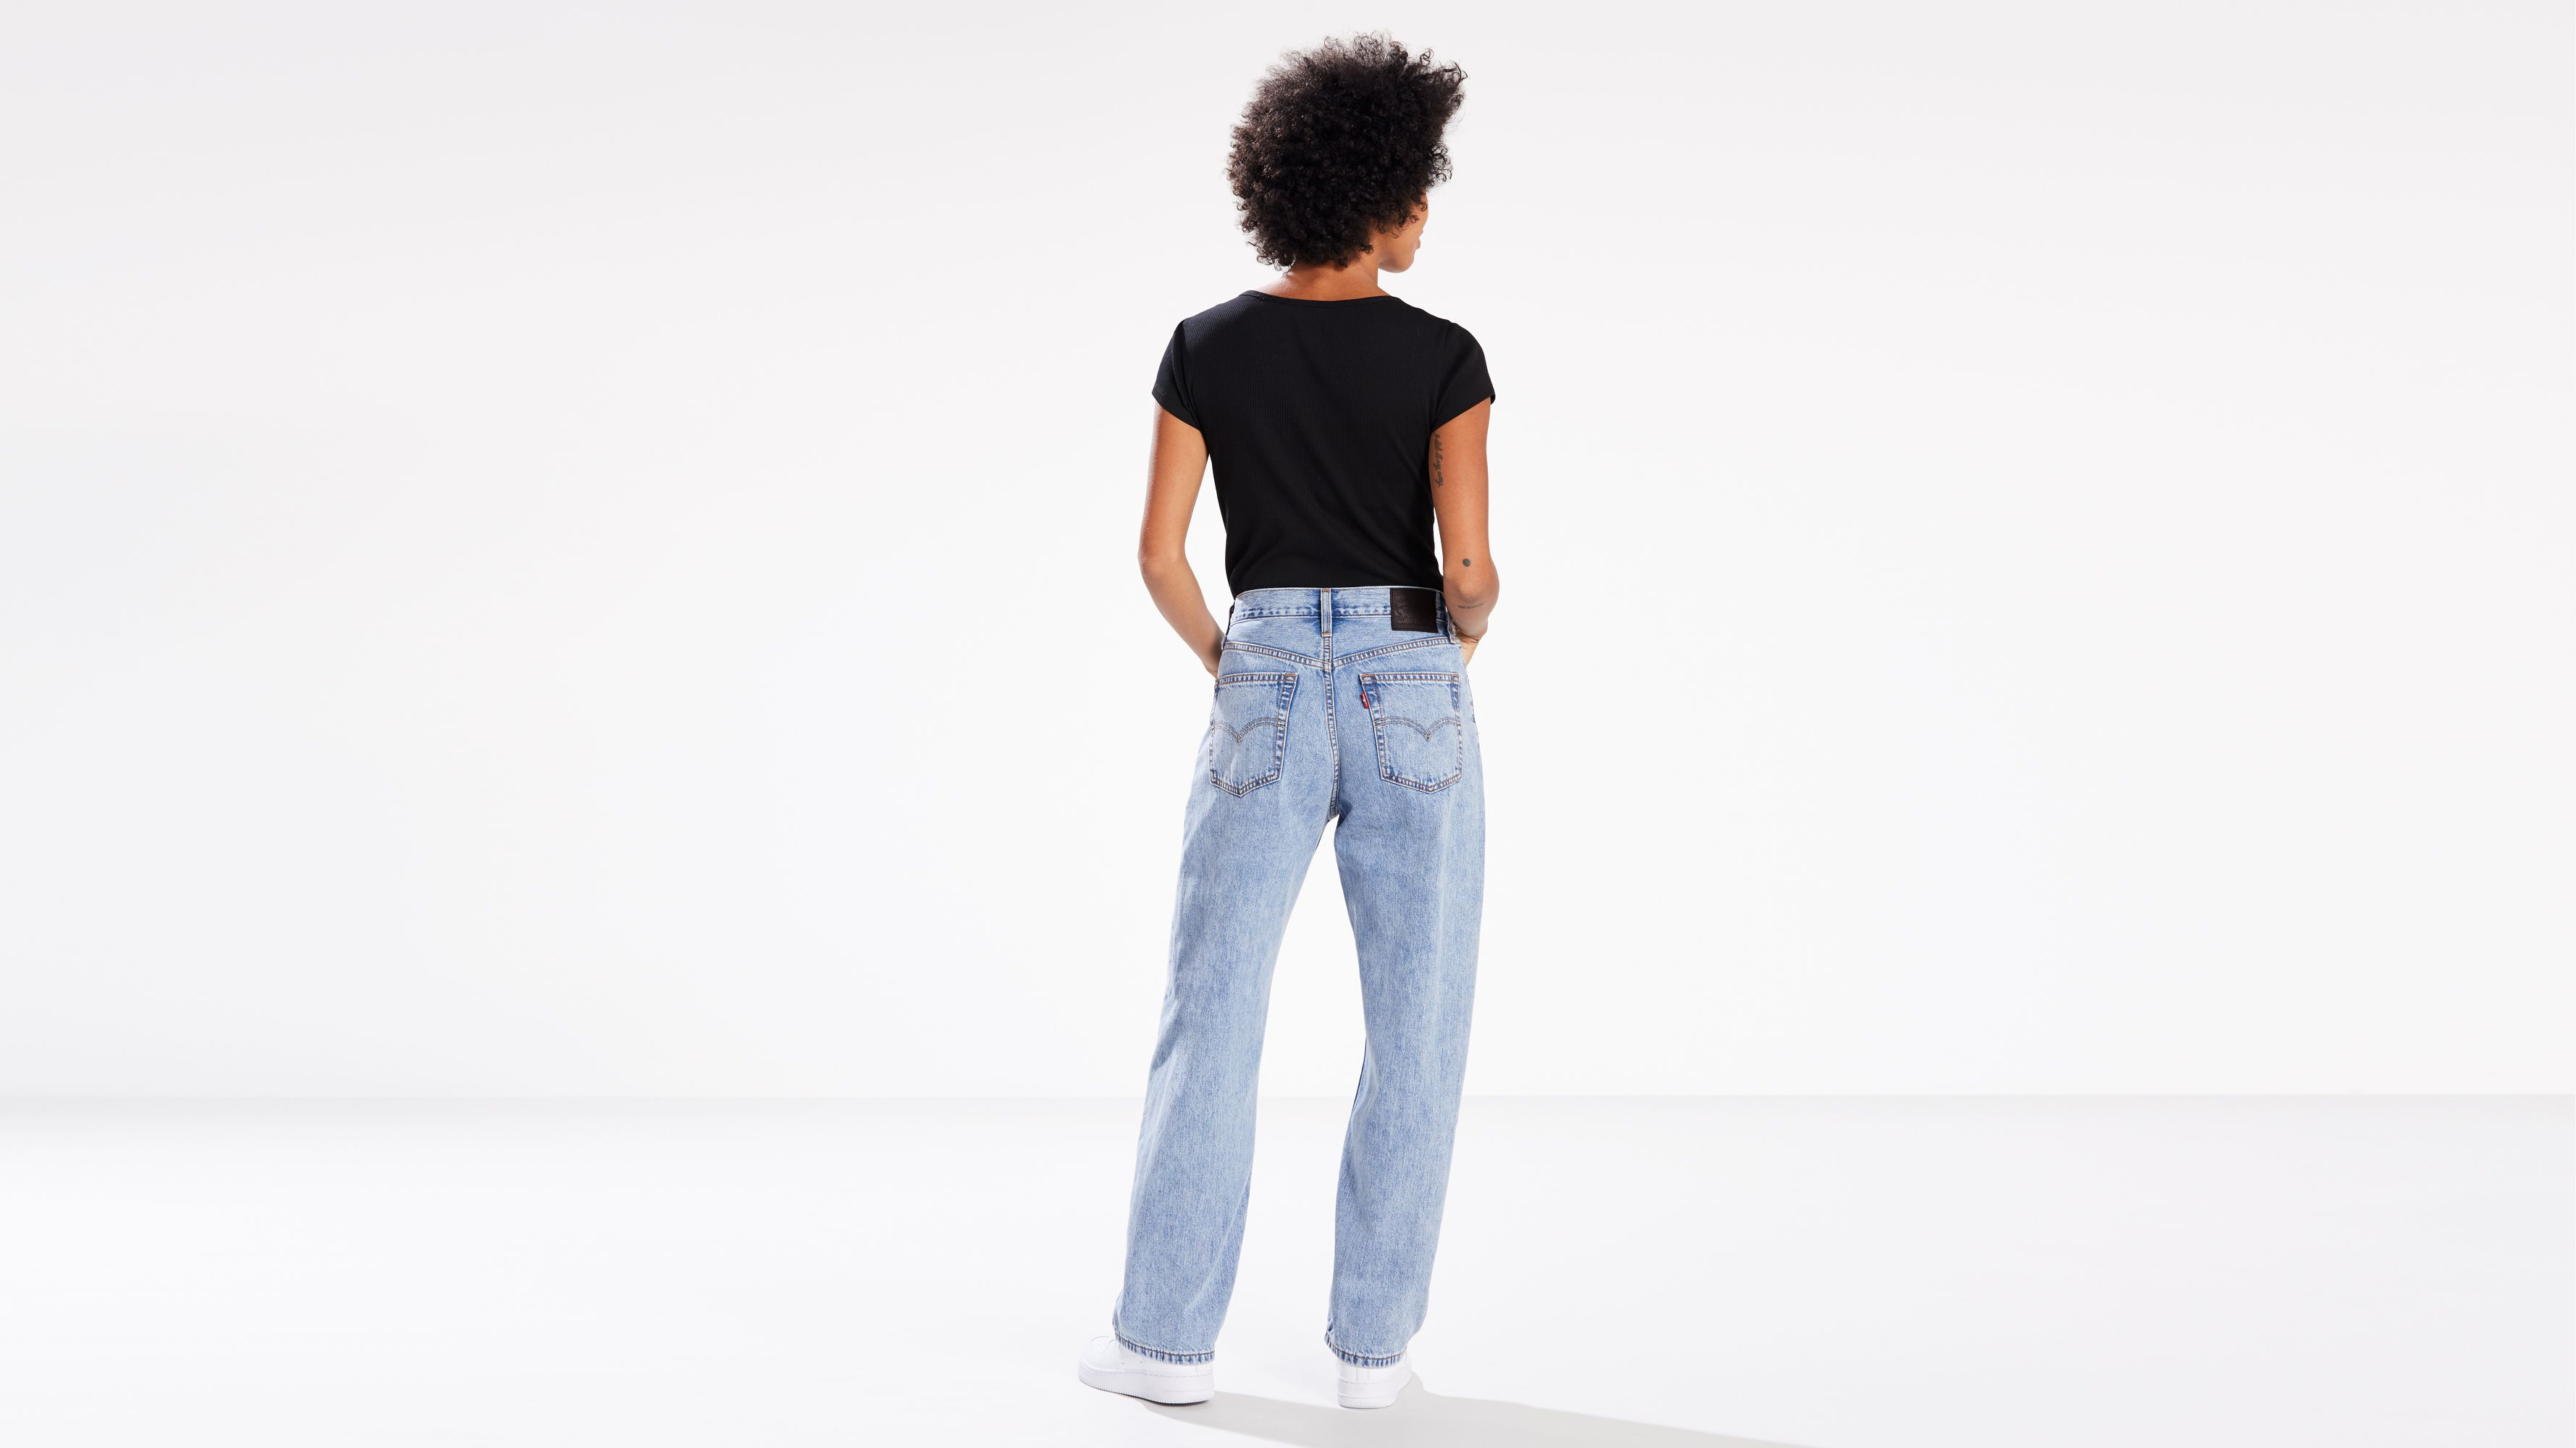 website that sells mens baggy jeans